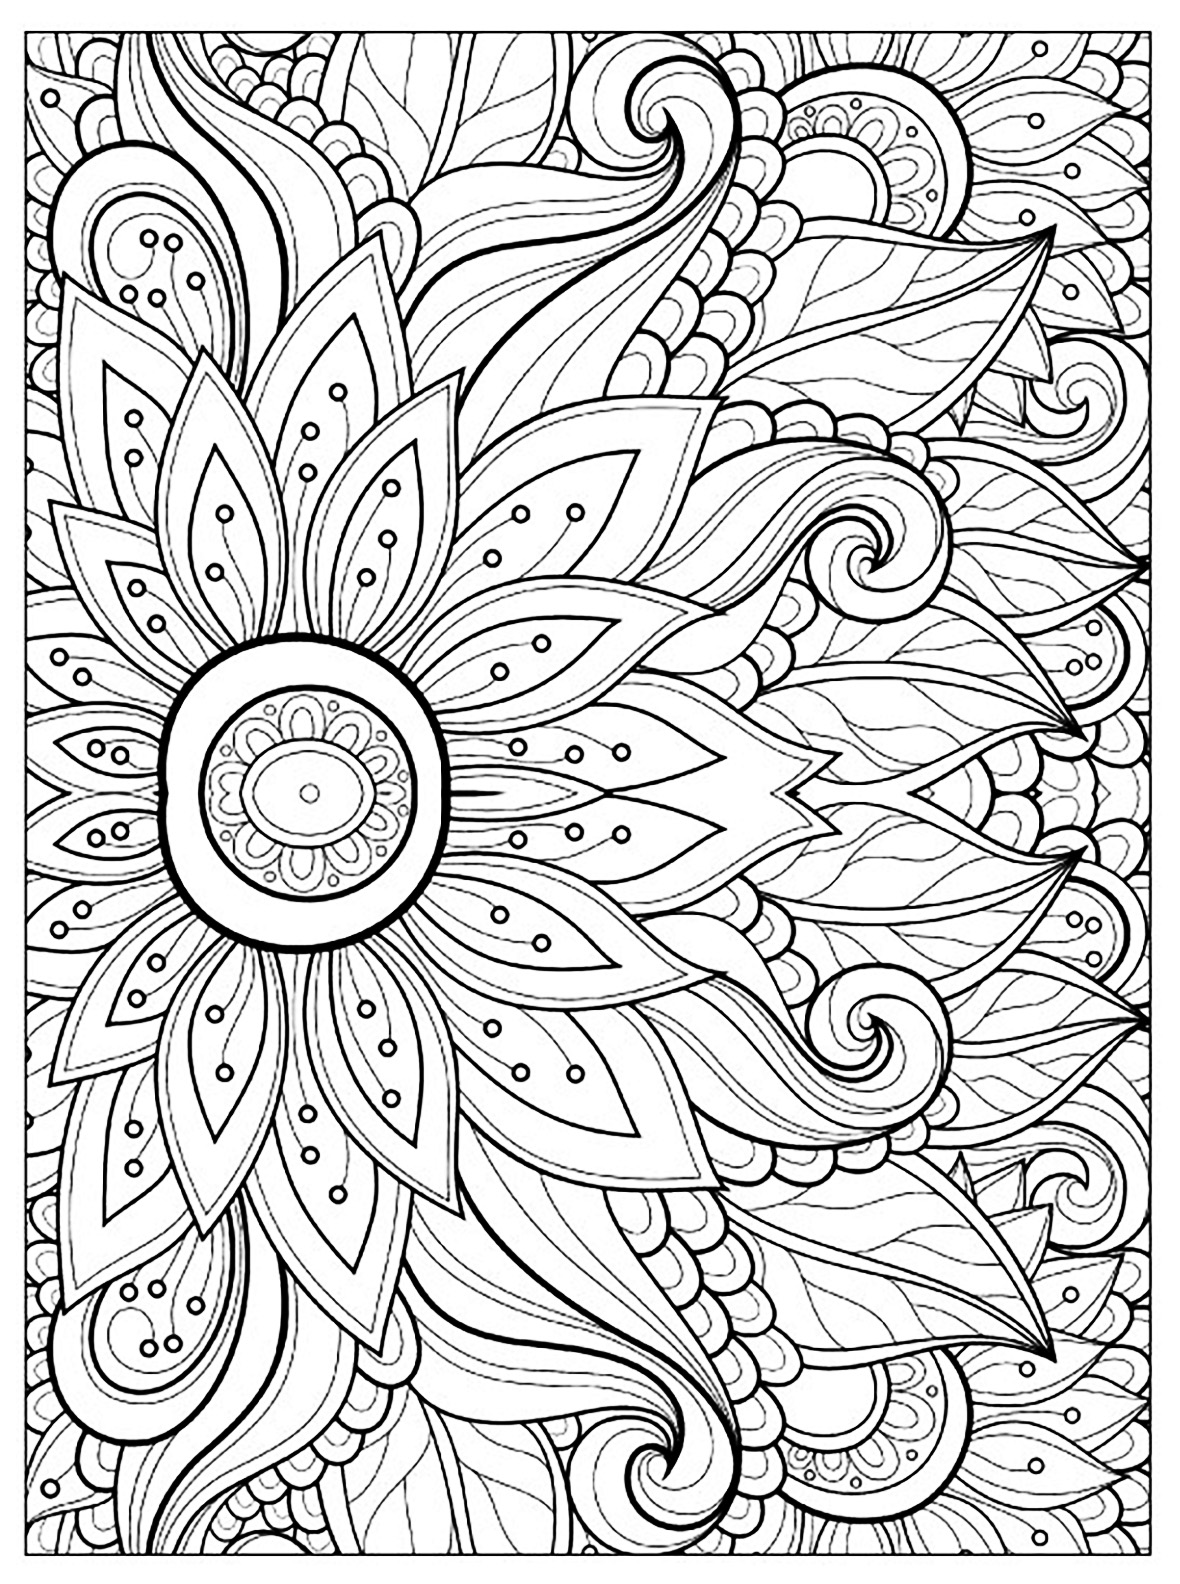 Flowers to download for free - Flowers Kids Coloring Pages   coloring sheets for flowers